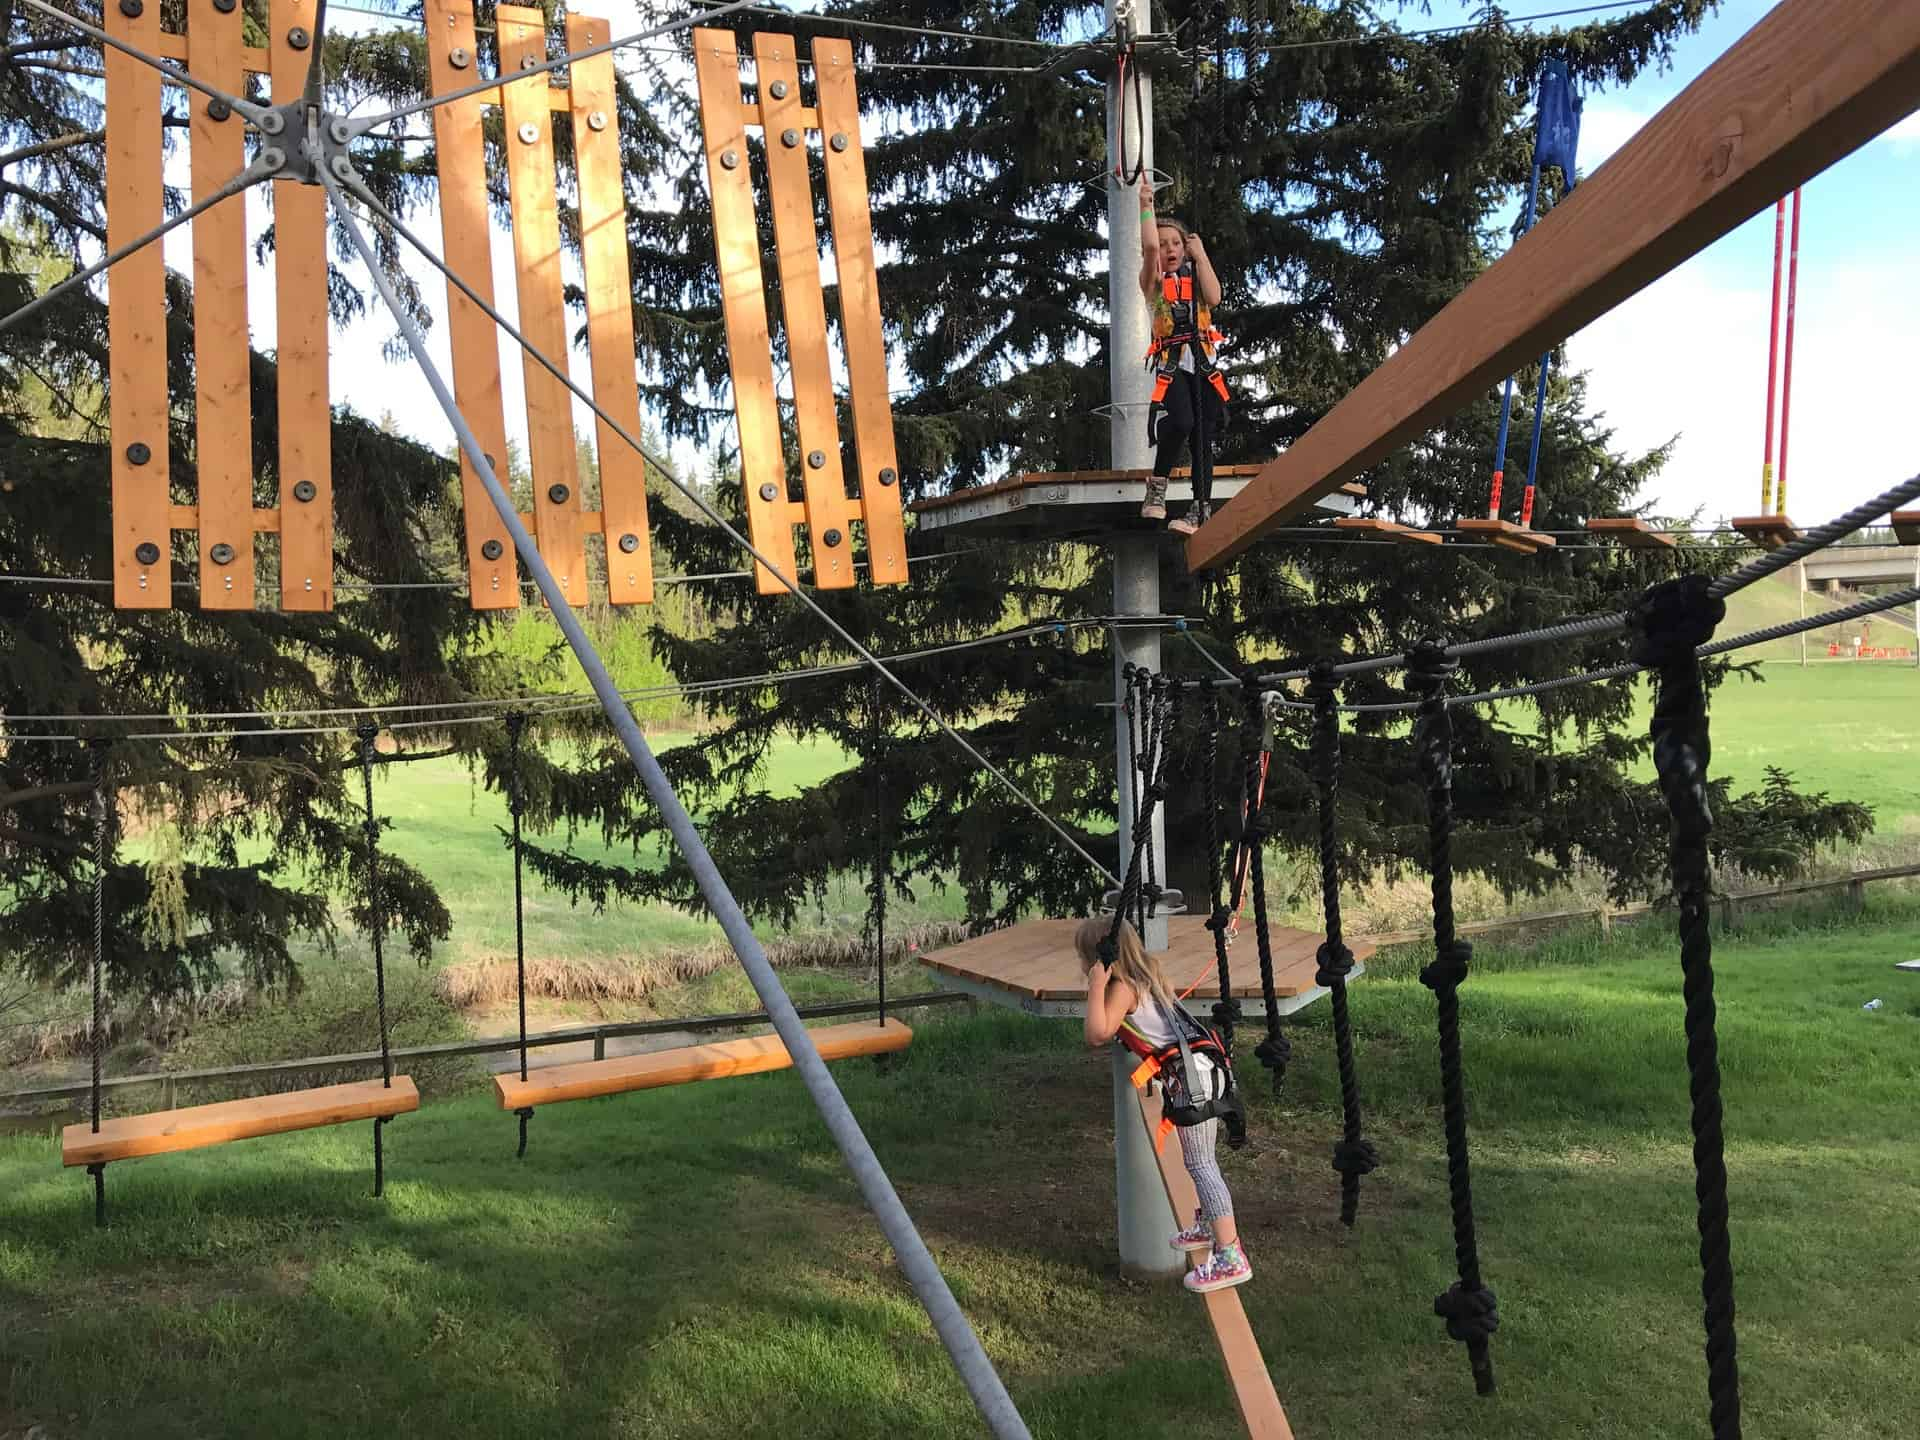 Snow Valley Aerial Park Opens for the Summer June 23